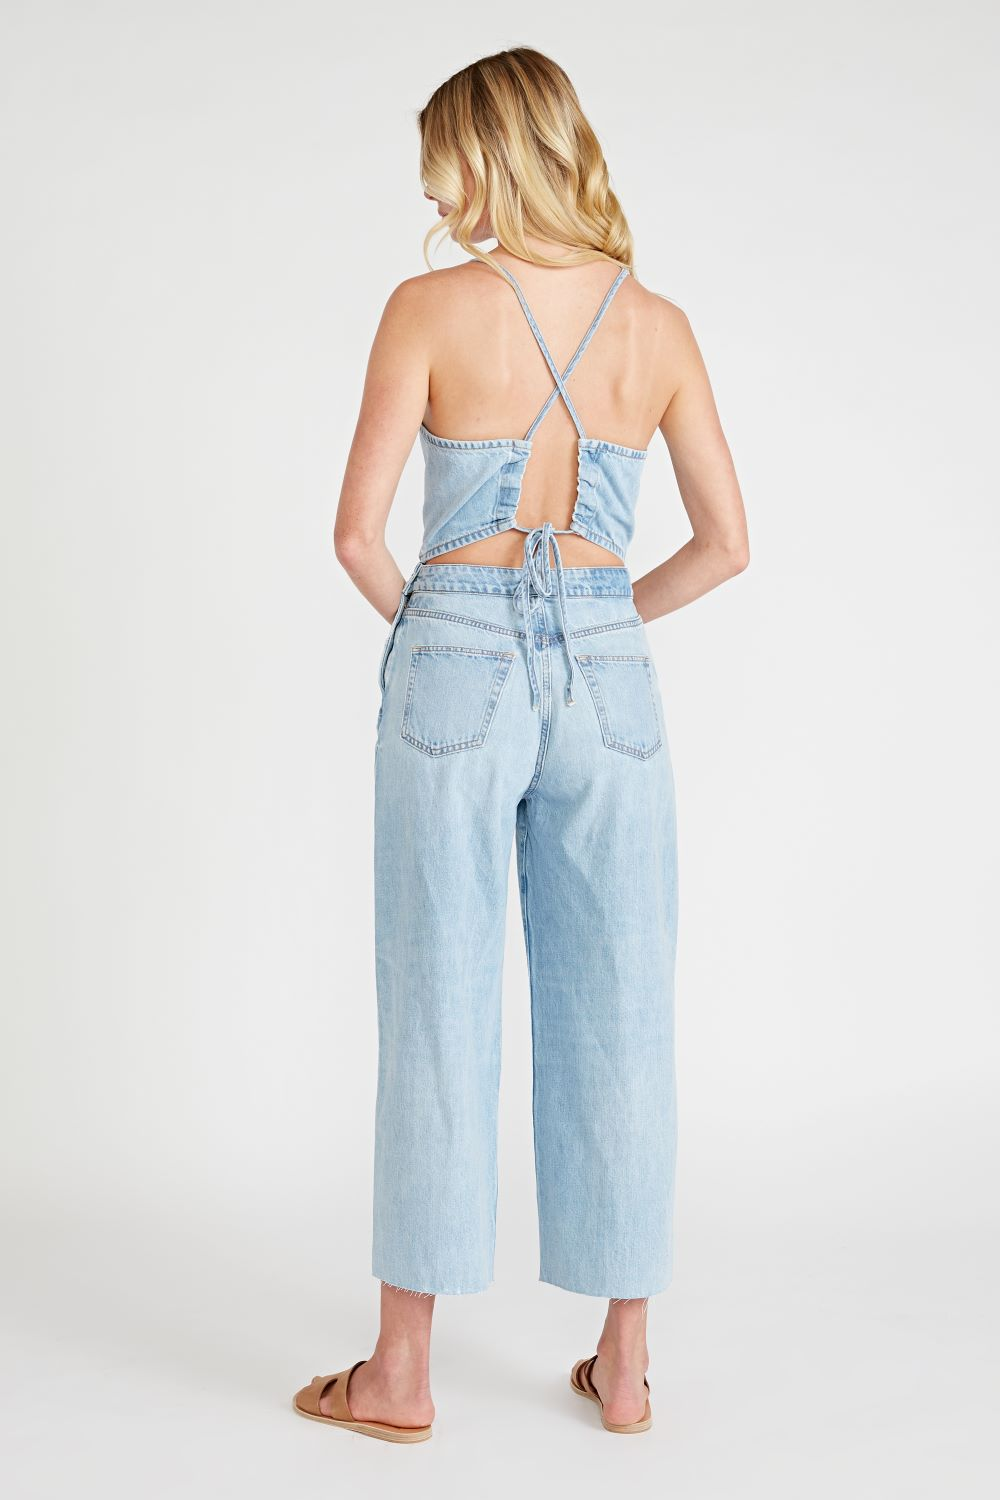 Cami Halter Jumpsuit - Quartz Creek